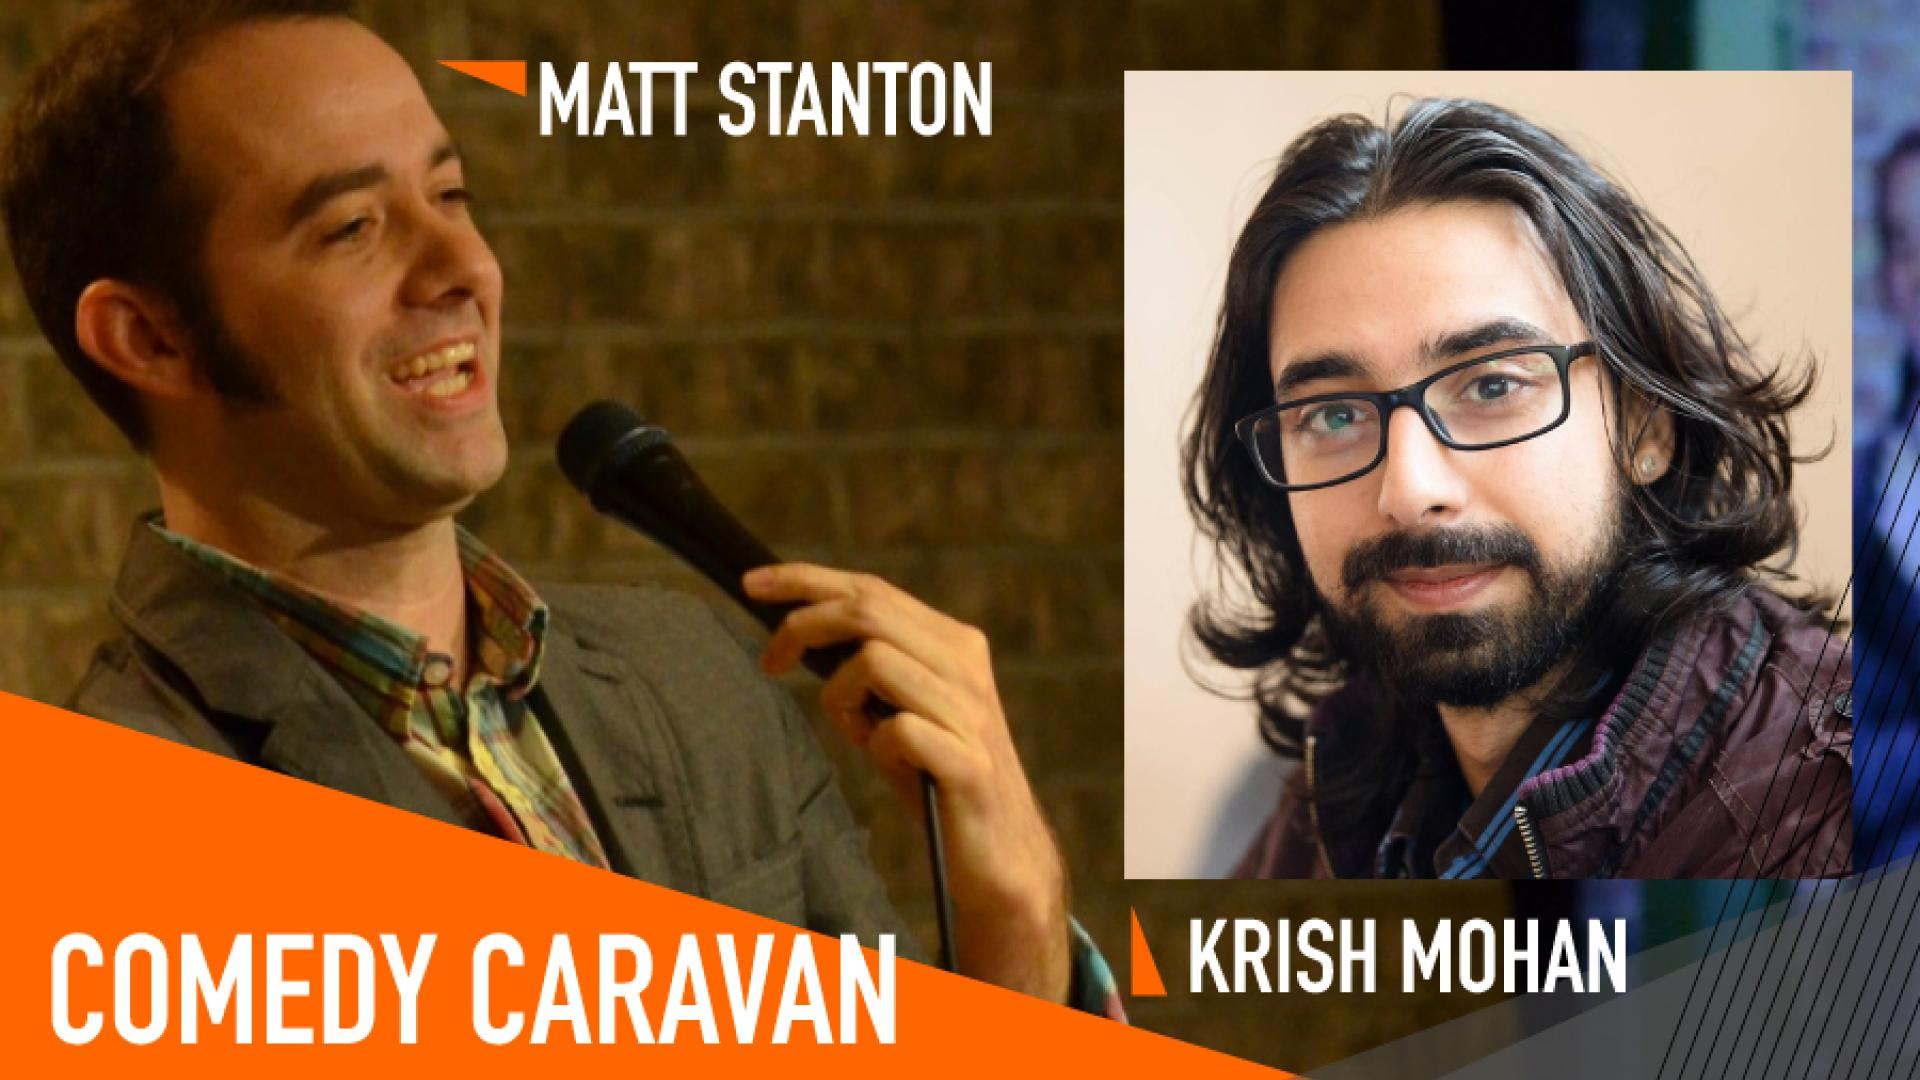 Comedy Caravan features Stanton and Mohan